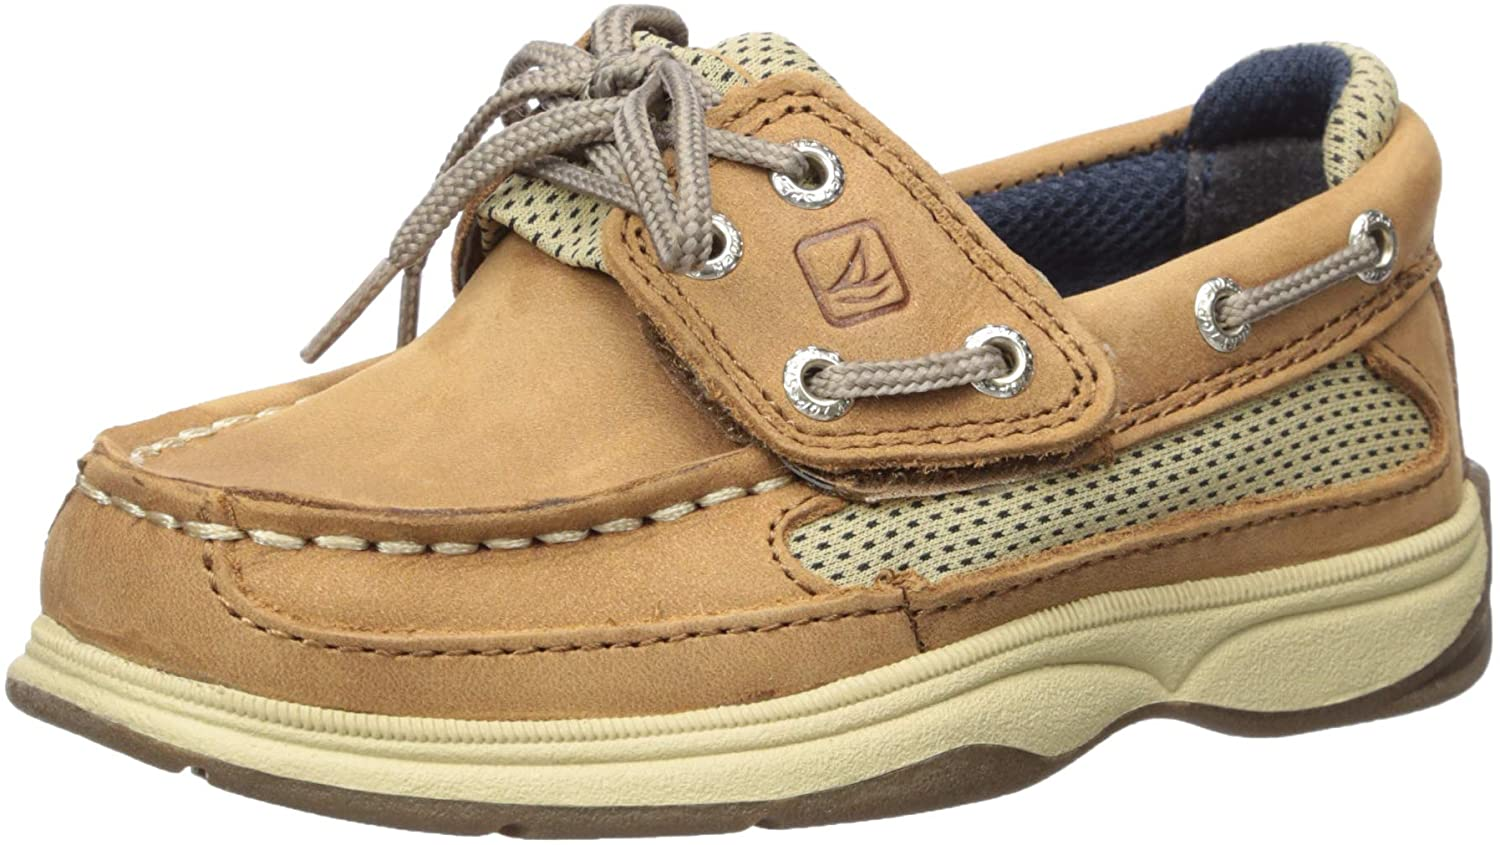 Sperry Unisex-Child Same day Max 61% OFF shipping Lanyard Alternative Closure Boat Shoe